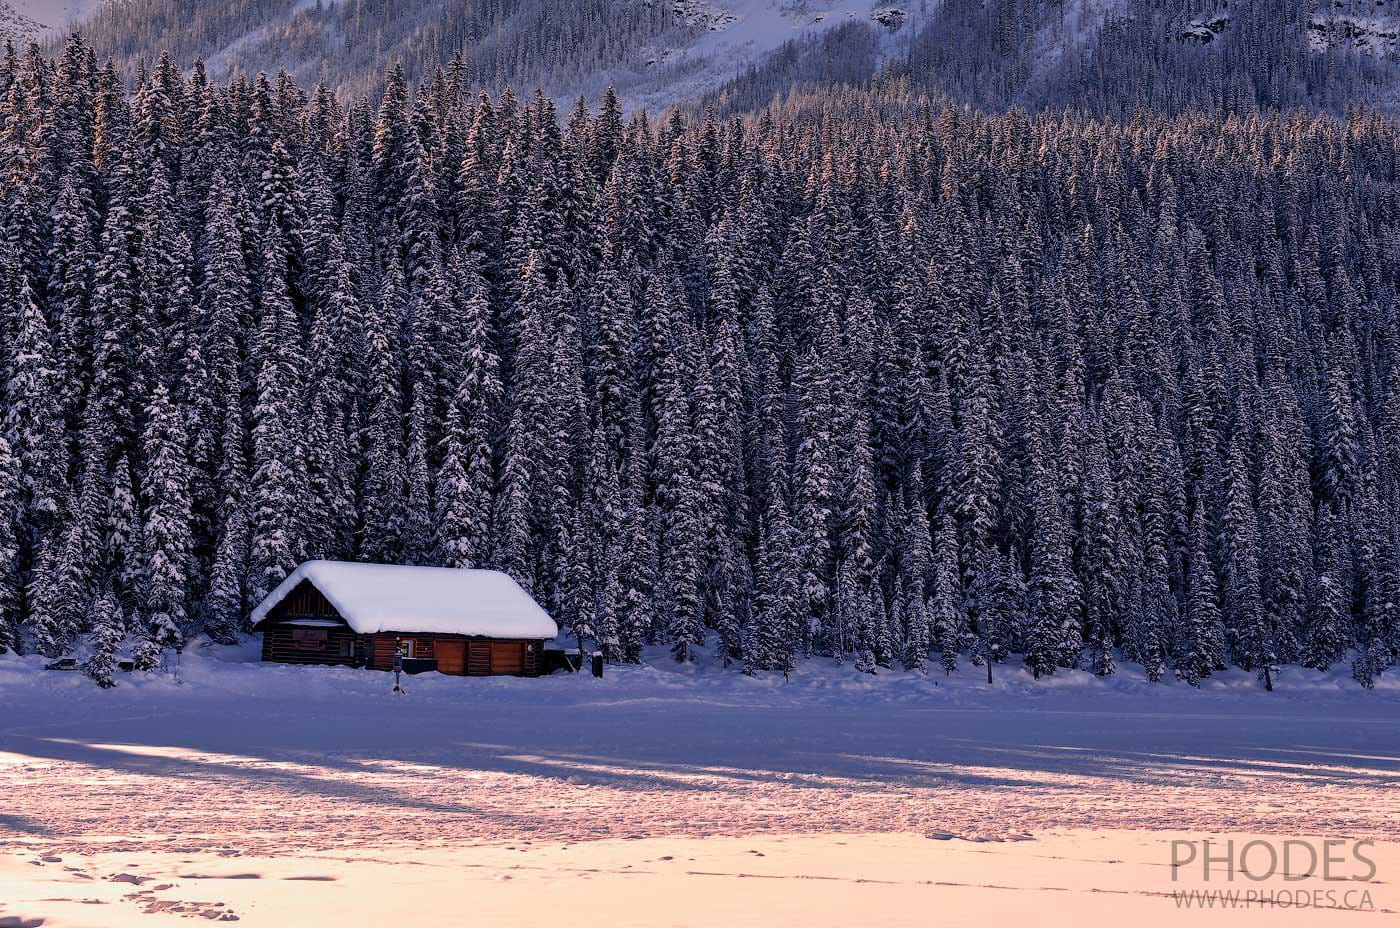 Boathouse on Lake Louise in winter